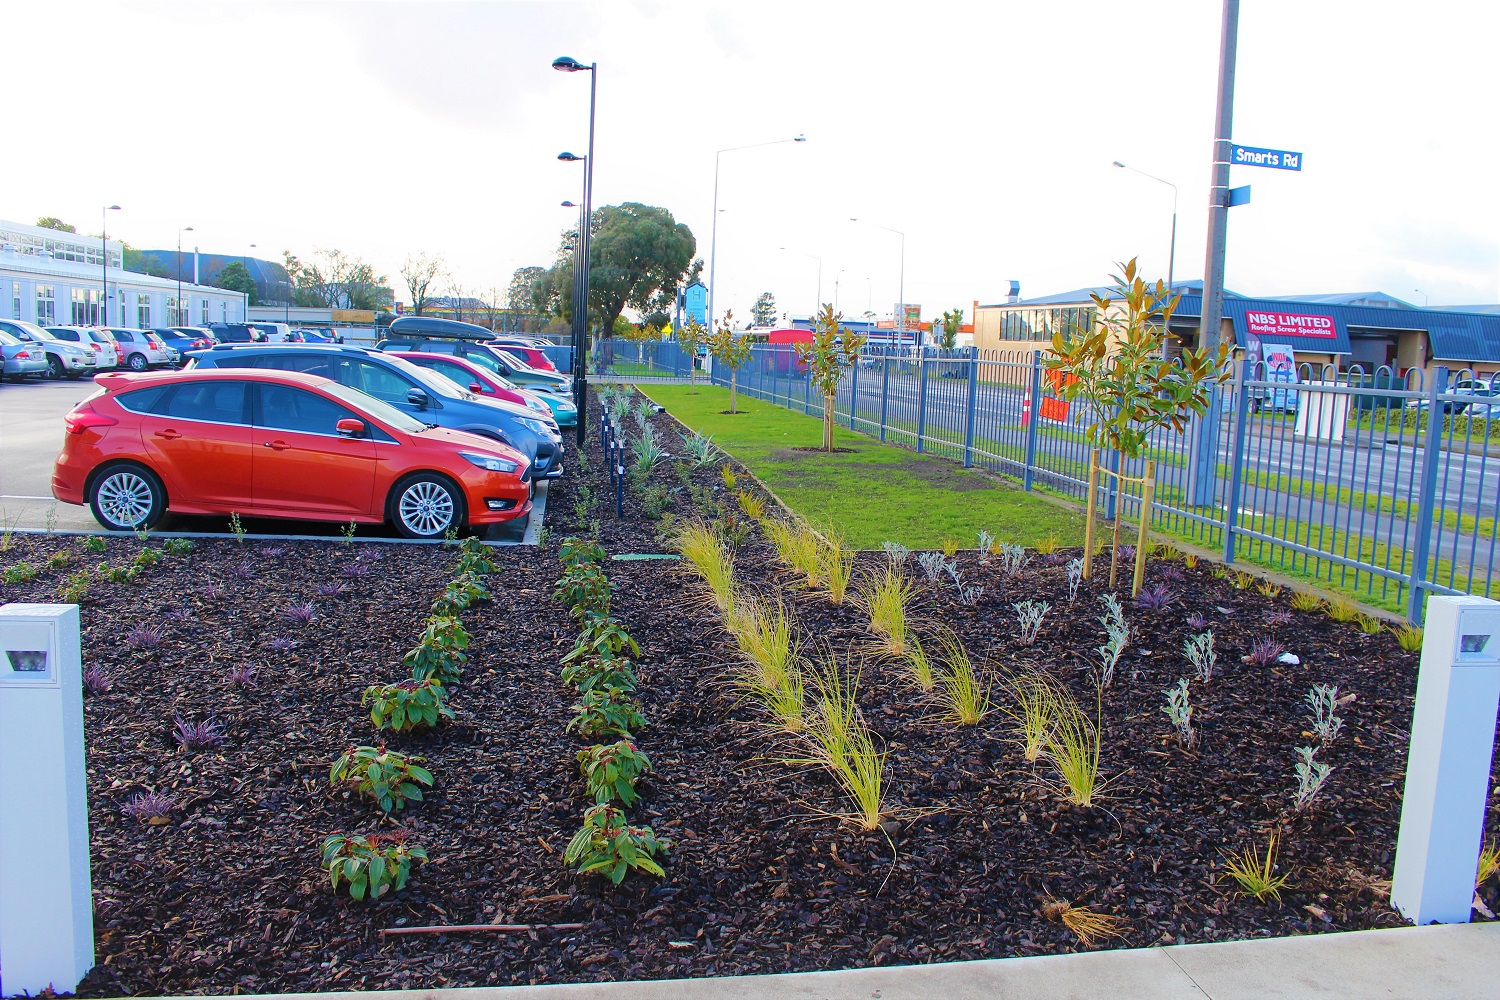 Landscaping in a carpark with a lawn and trees and shurbs